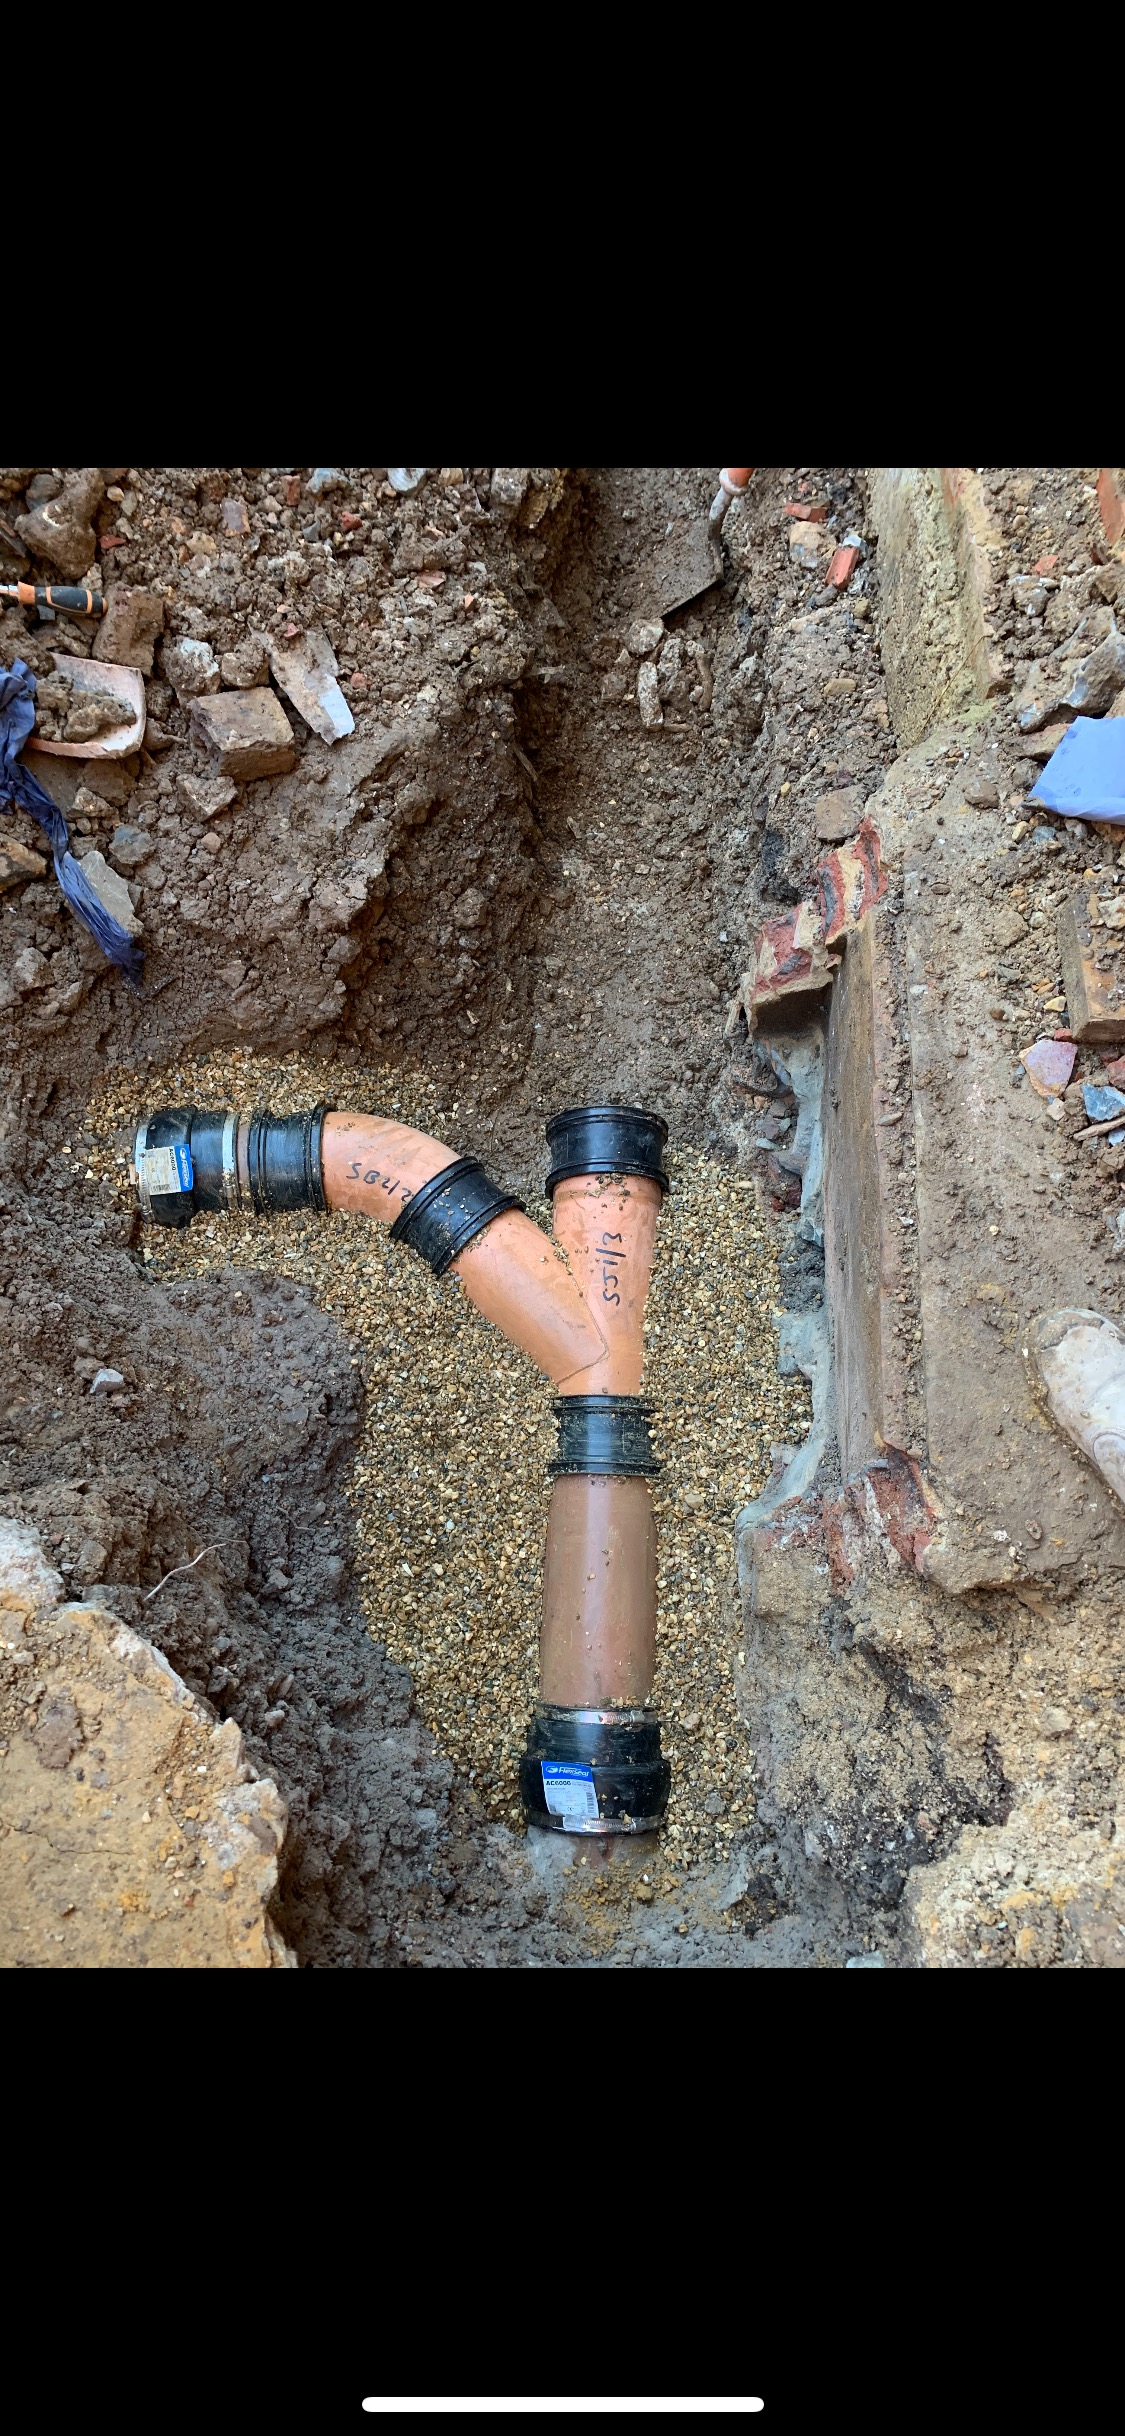 Southern Water Sewer installment using clay pipework as per Souther Water specification